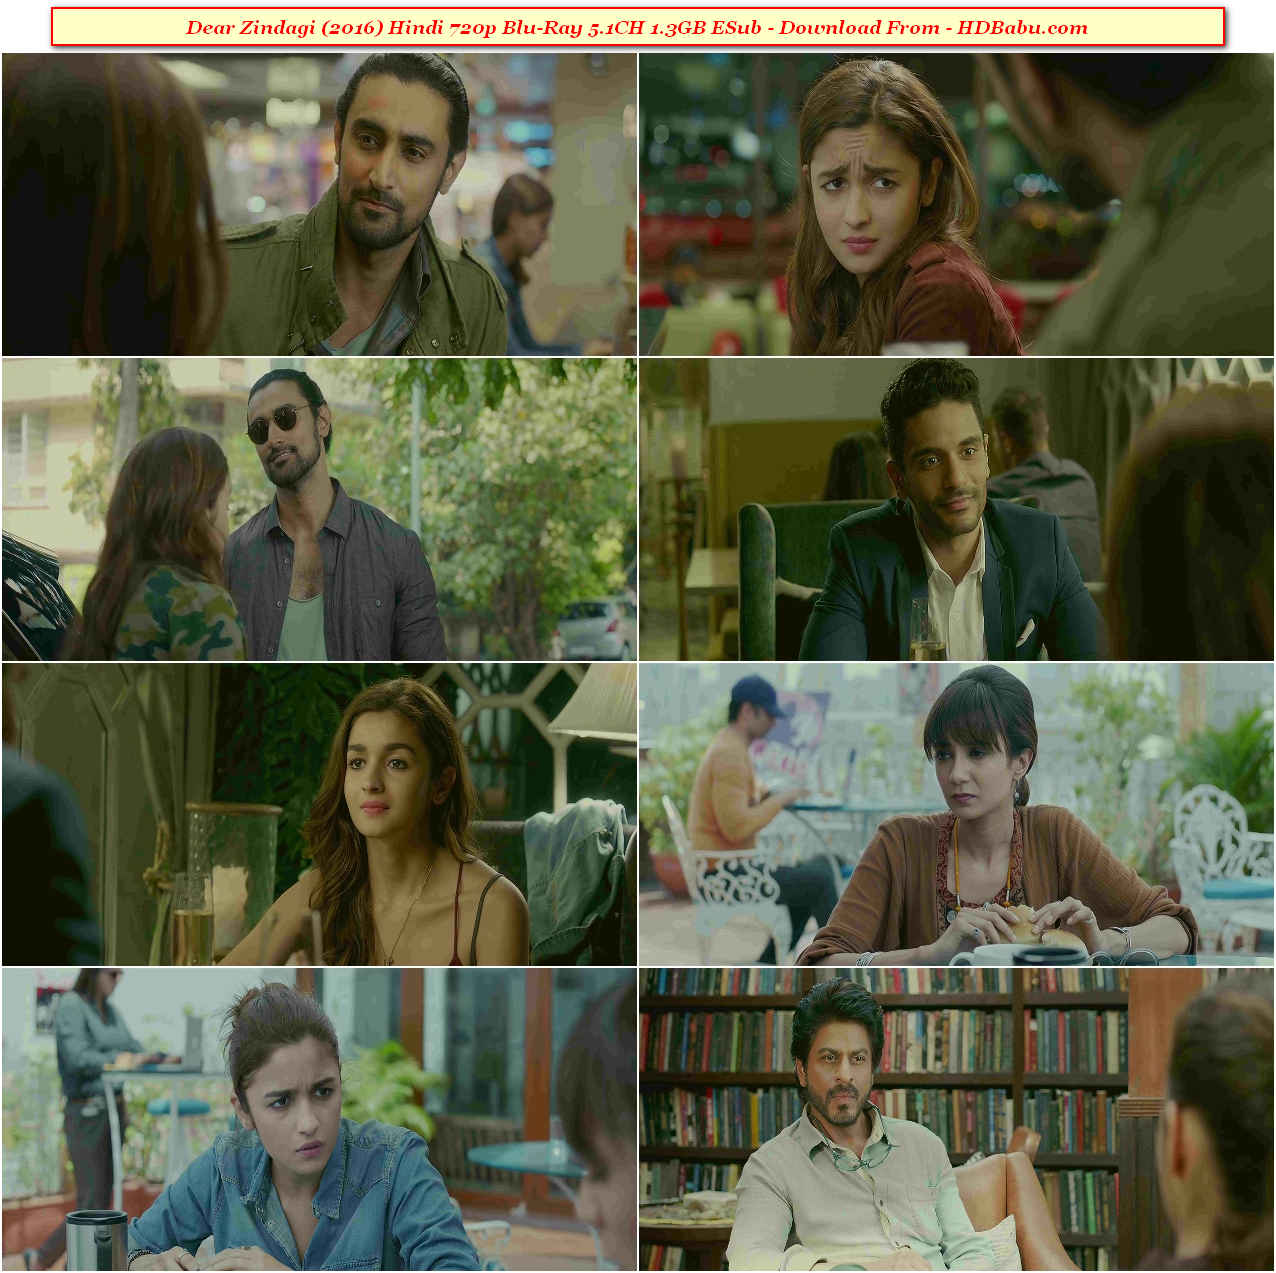 Dear Zindagi Movie Download